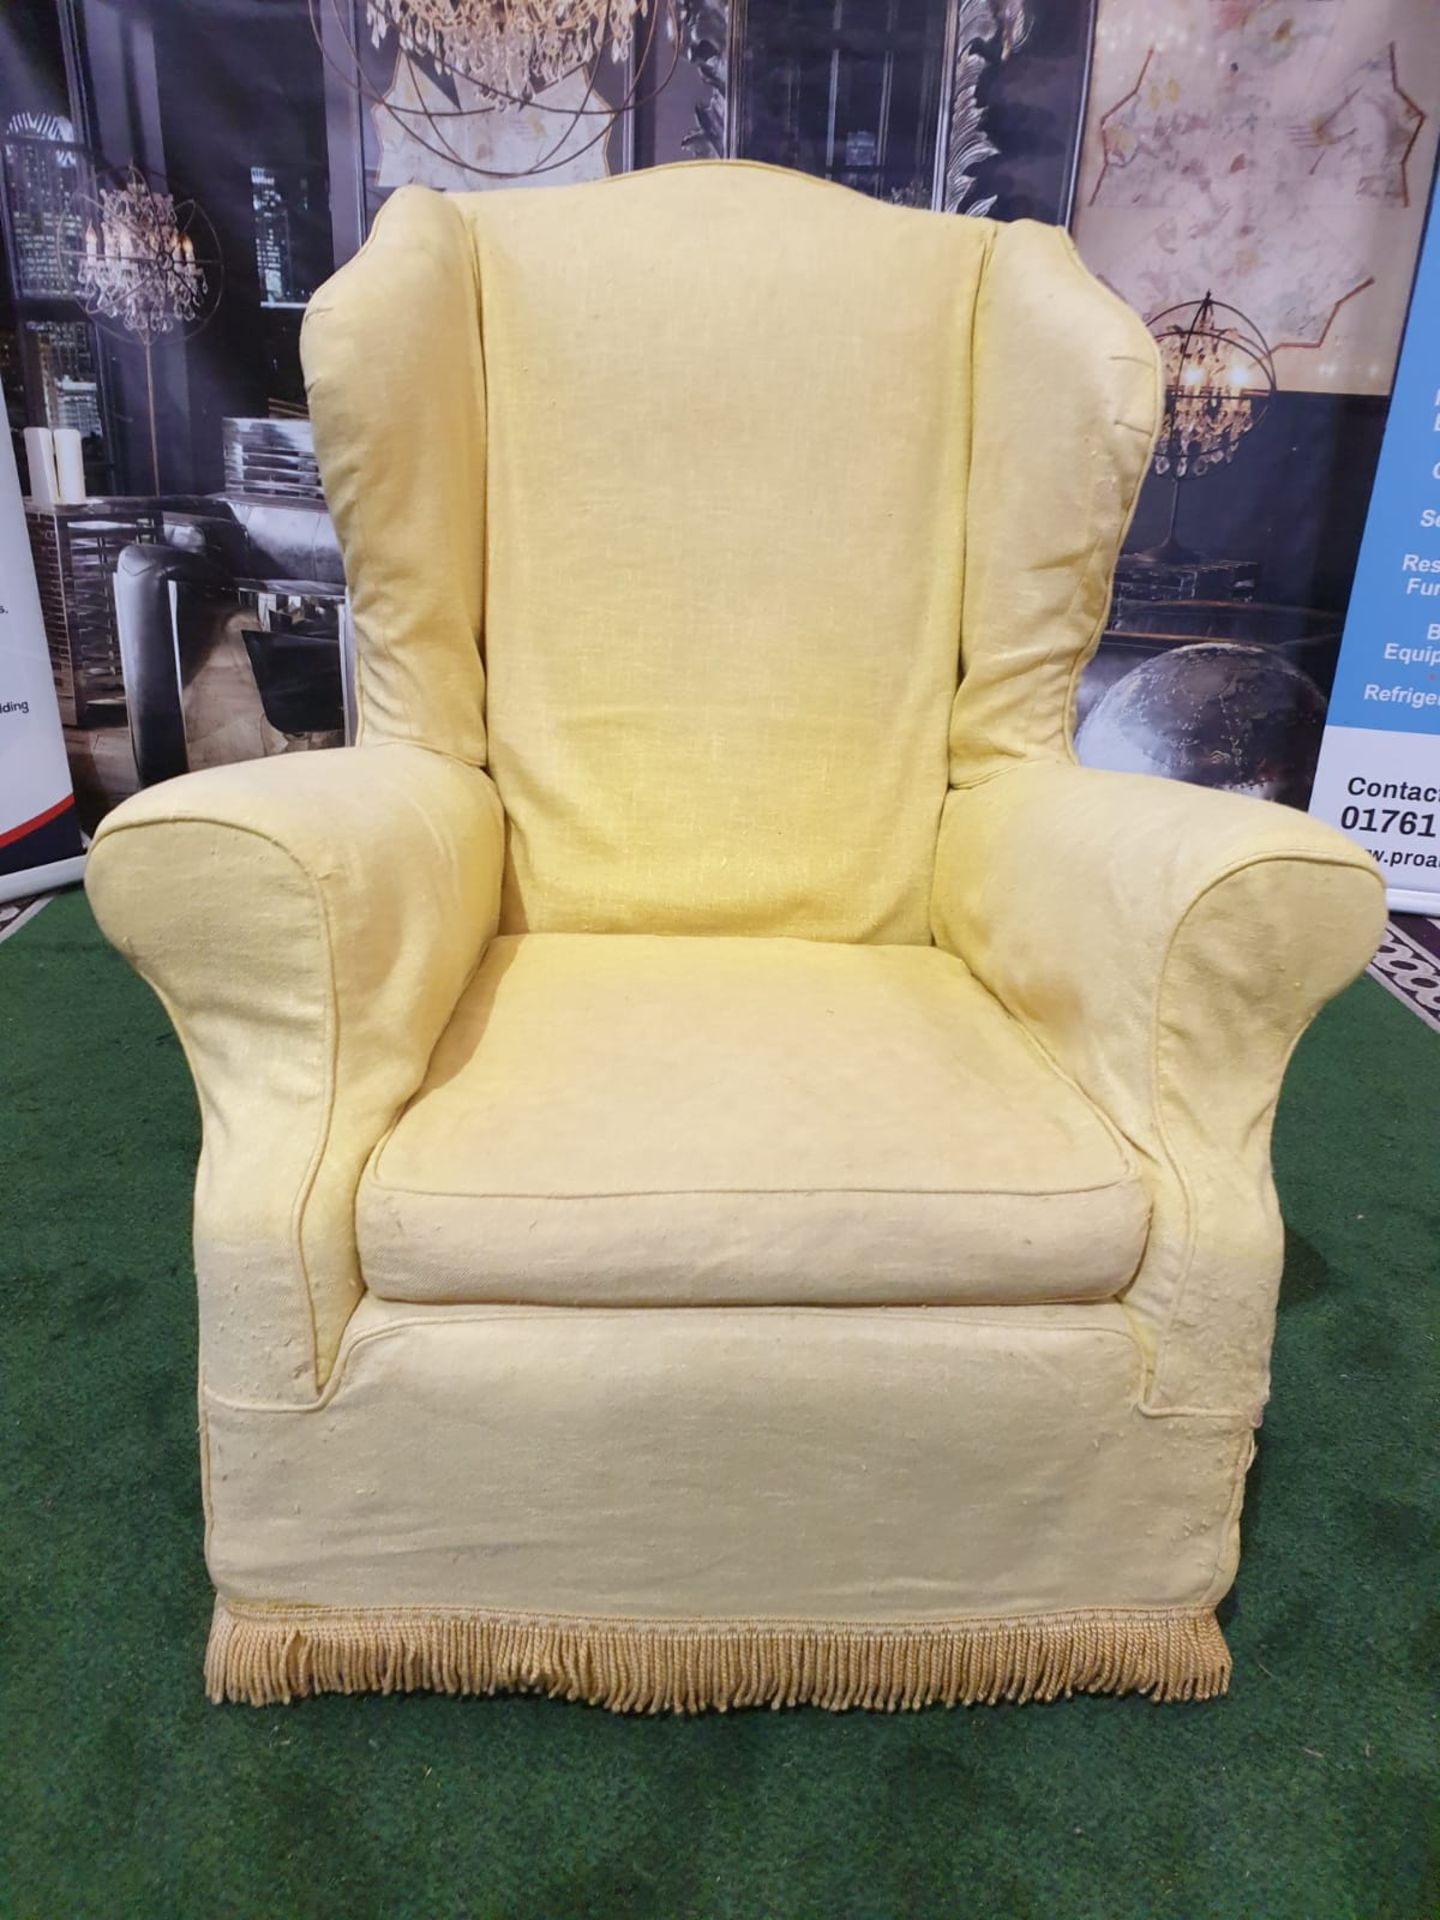 A 1940s style upholstered wing back armchair An elegant and unusual wing chair with curvaceous - Image 2 of 3